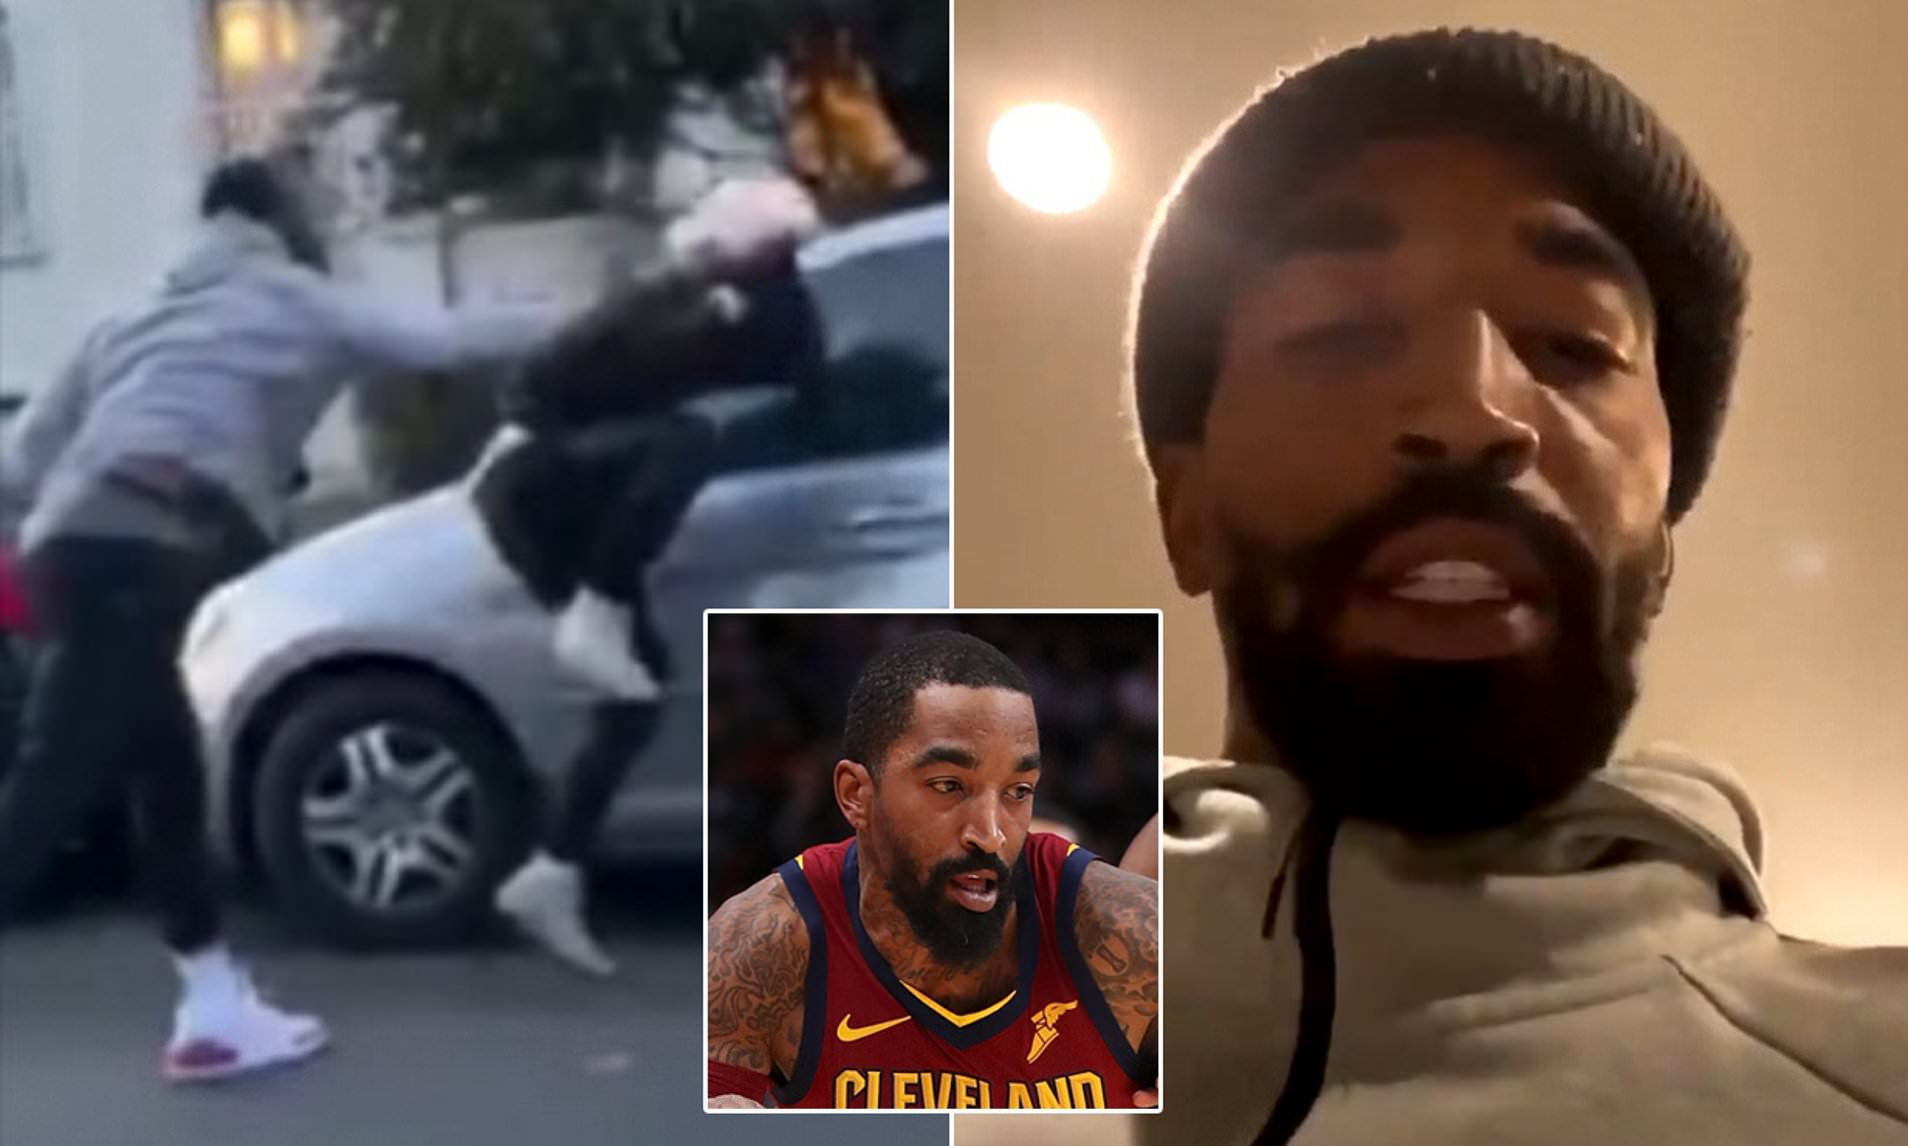 Riots in Los Angeles J.R. Smith, Former NBA star had chased and smashed looter, stating he does not like the crime